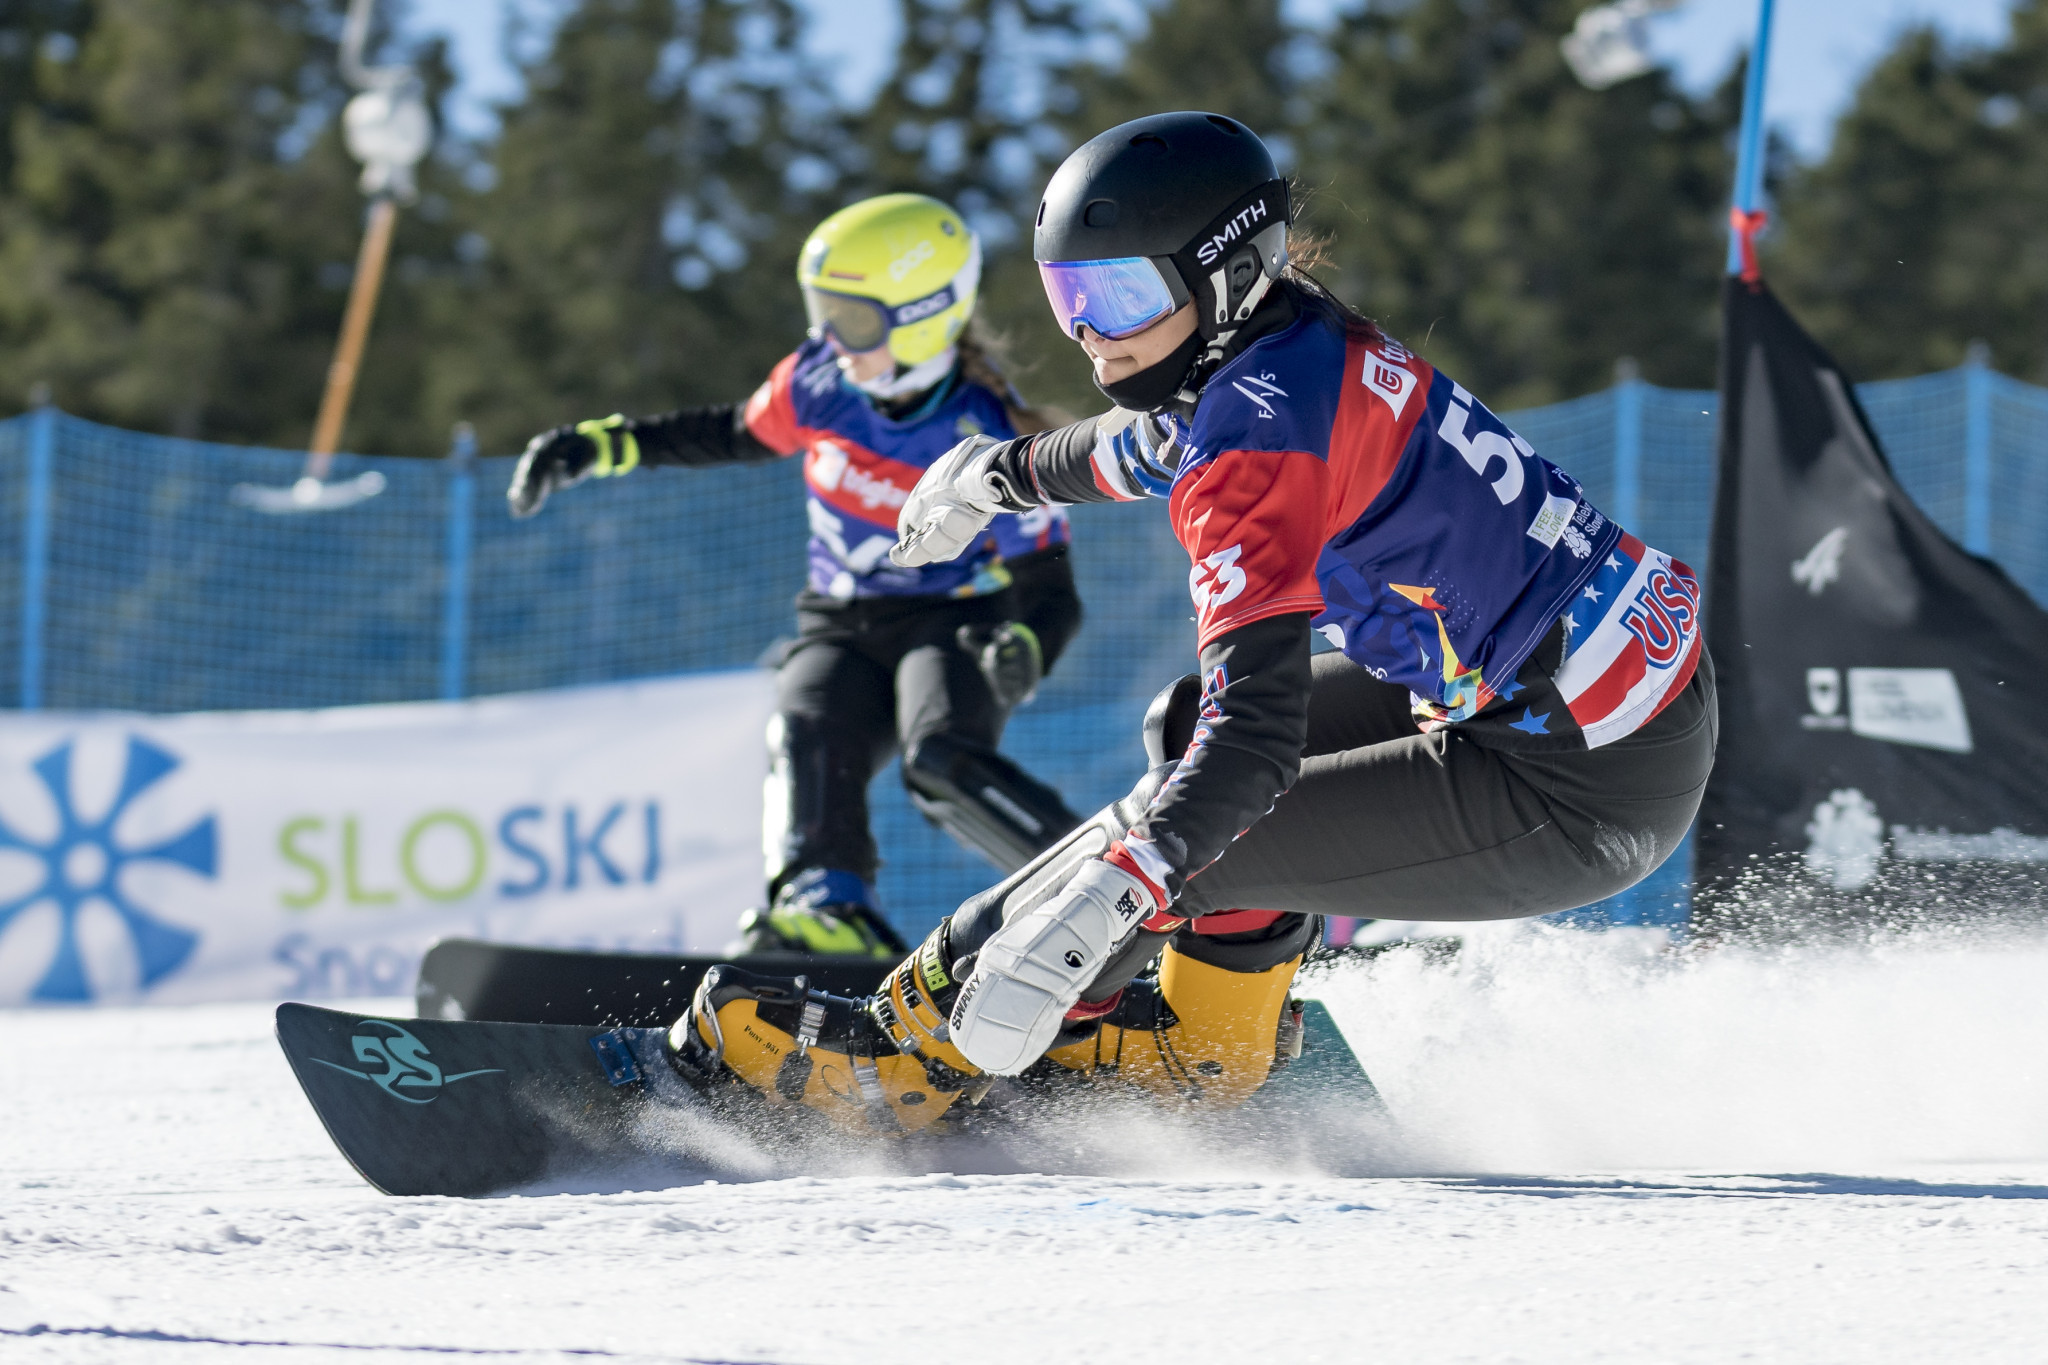 Toyota rejoins US Ski and Snowboard with partnership until 2026 Winter Olympics